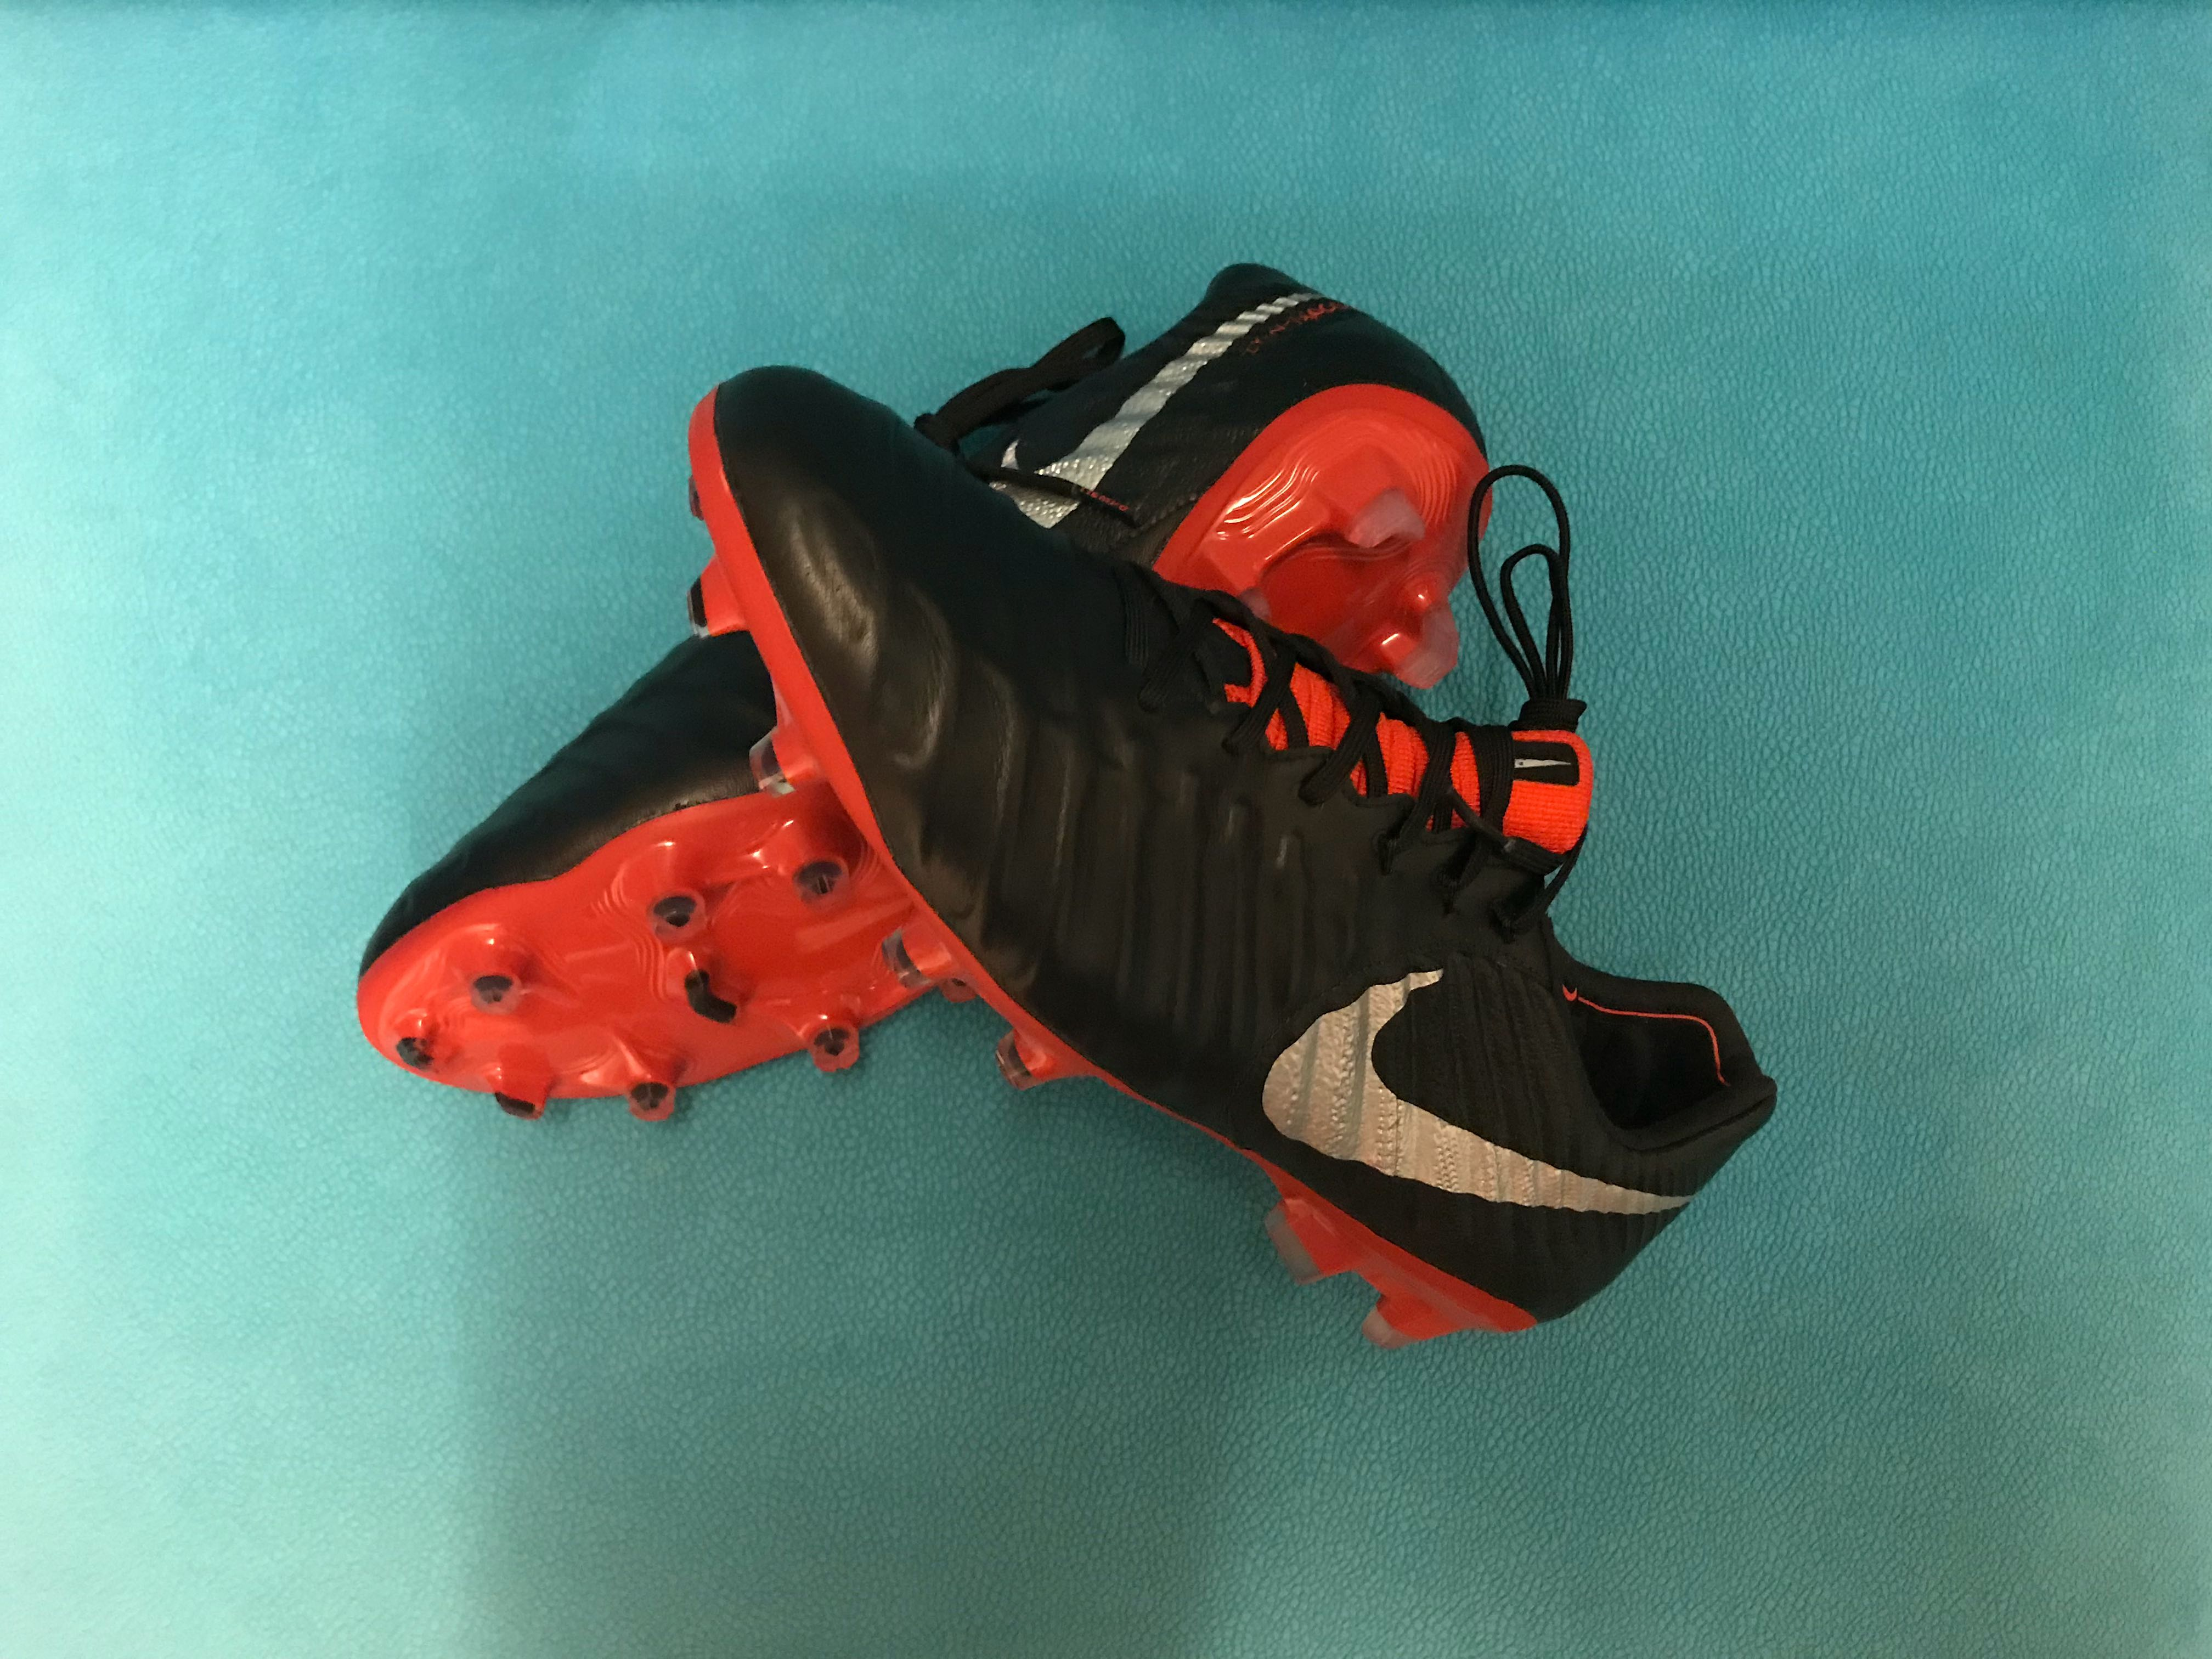 bf65ff762e67 NIKE Football Boots, Sports, Sports Apparel on Carousell